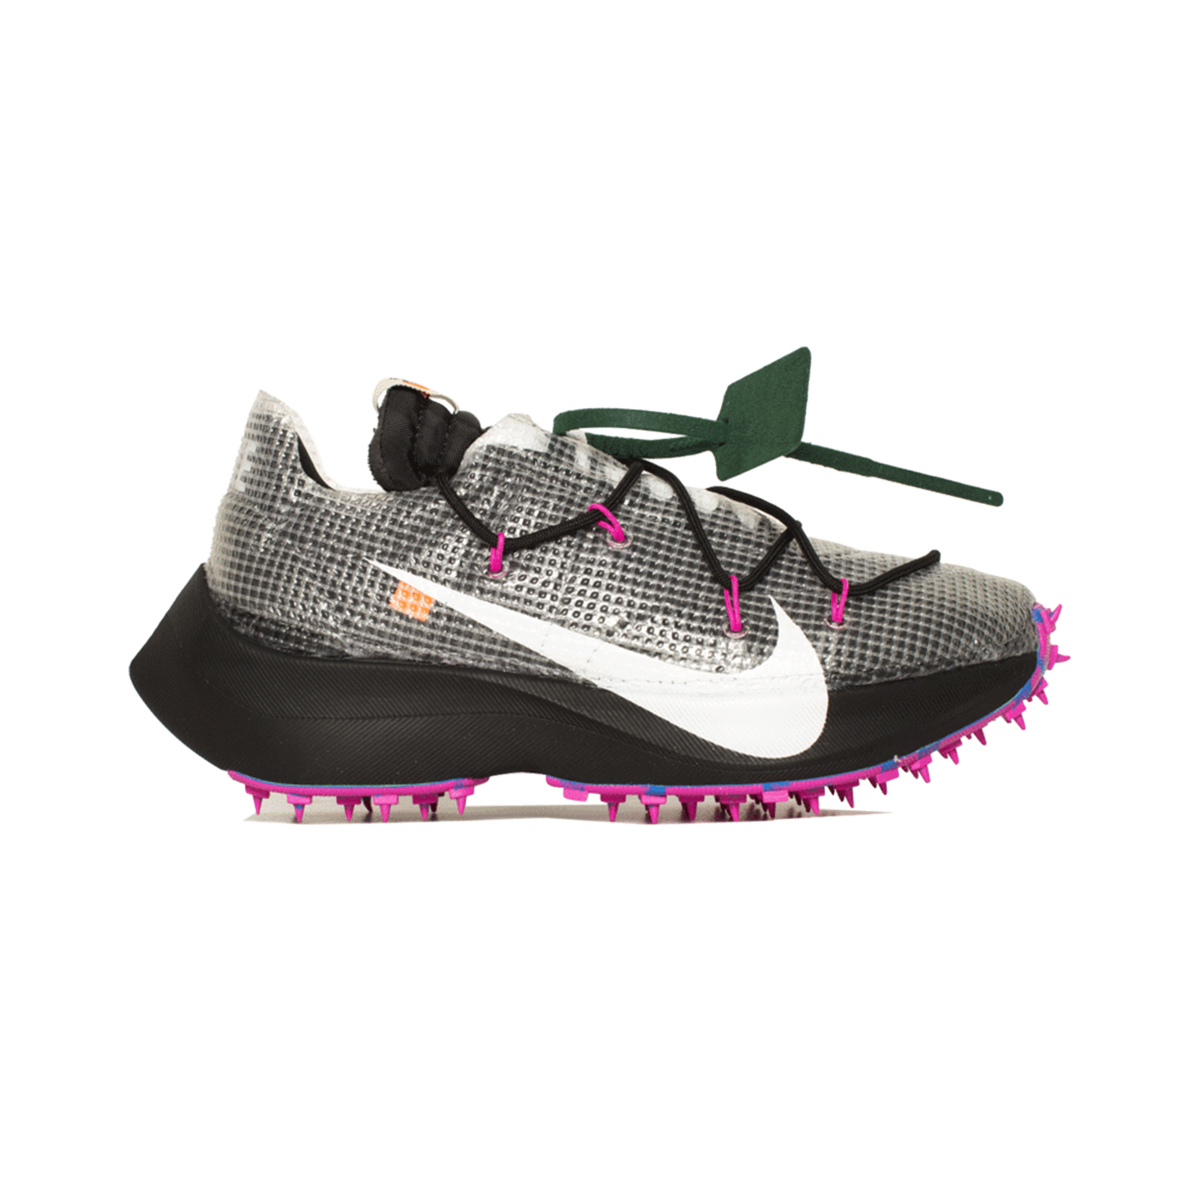 Primary image for Off-White x Nike Women's Vapor Street (Black/ Grey/ Fuchsia) Sizes 6-10